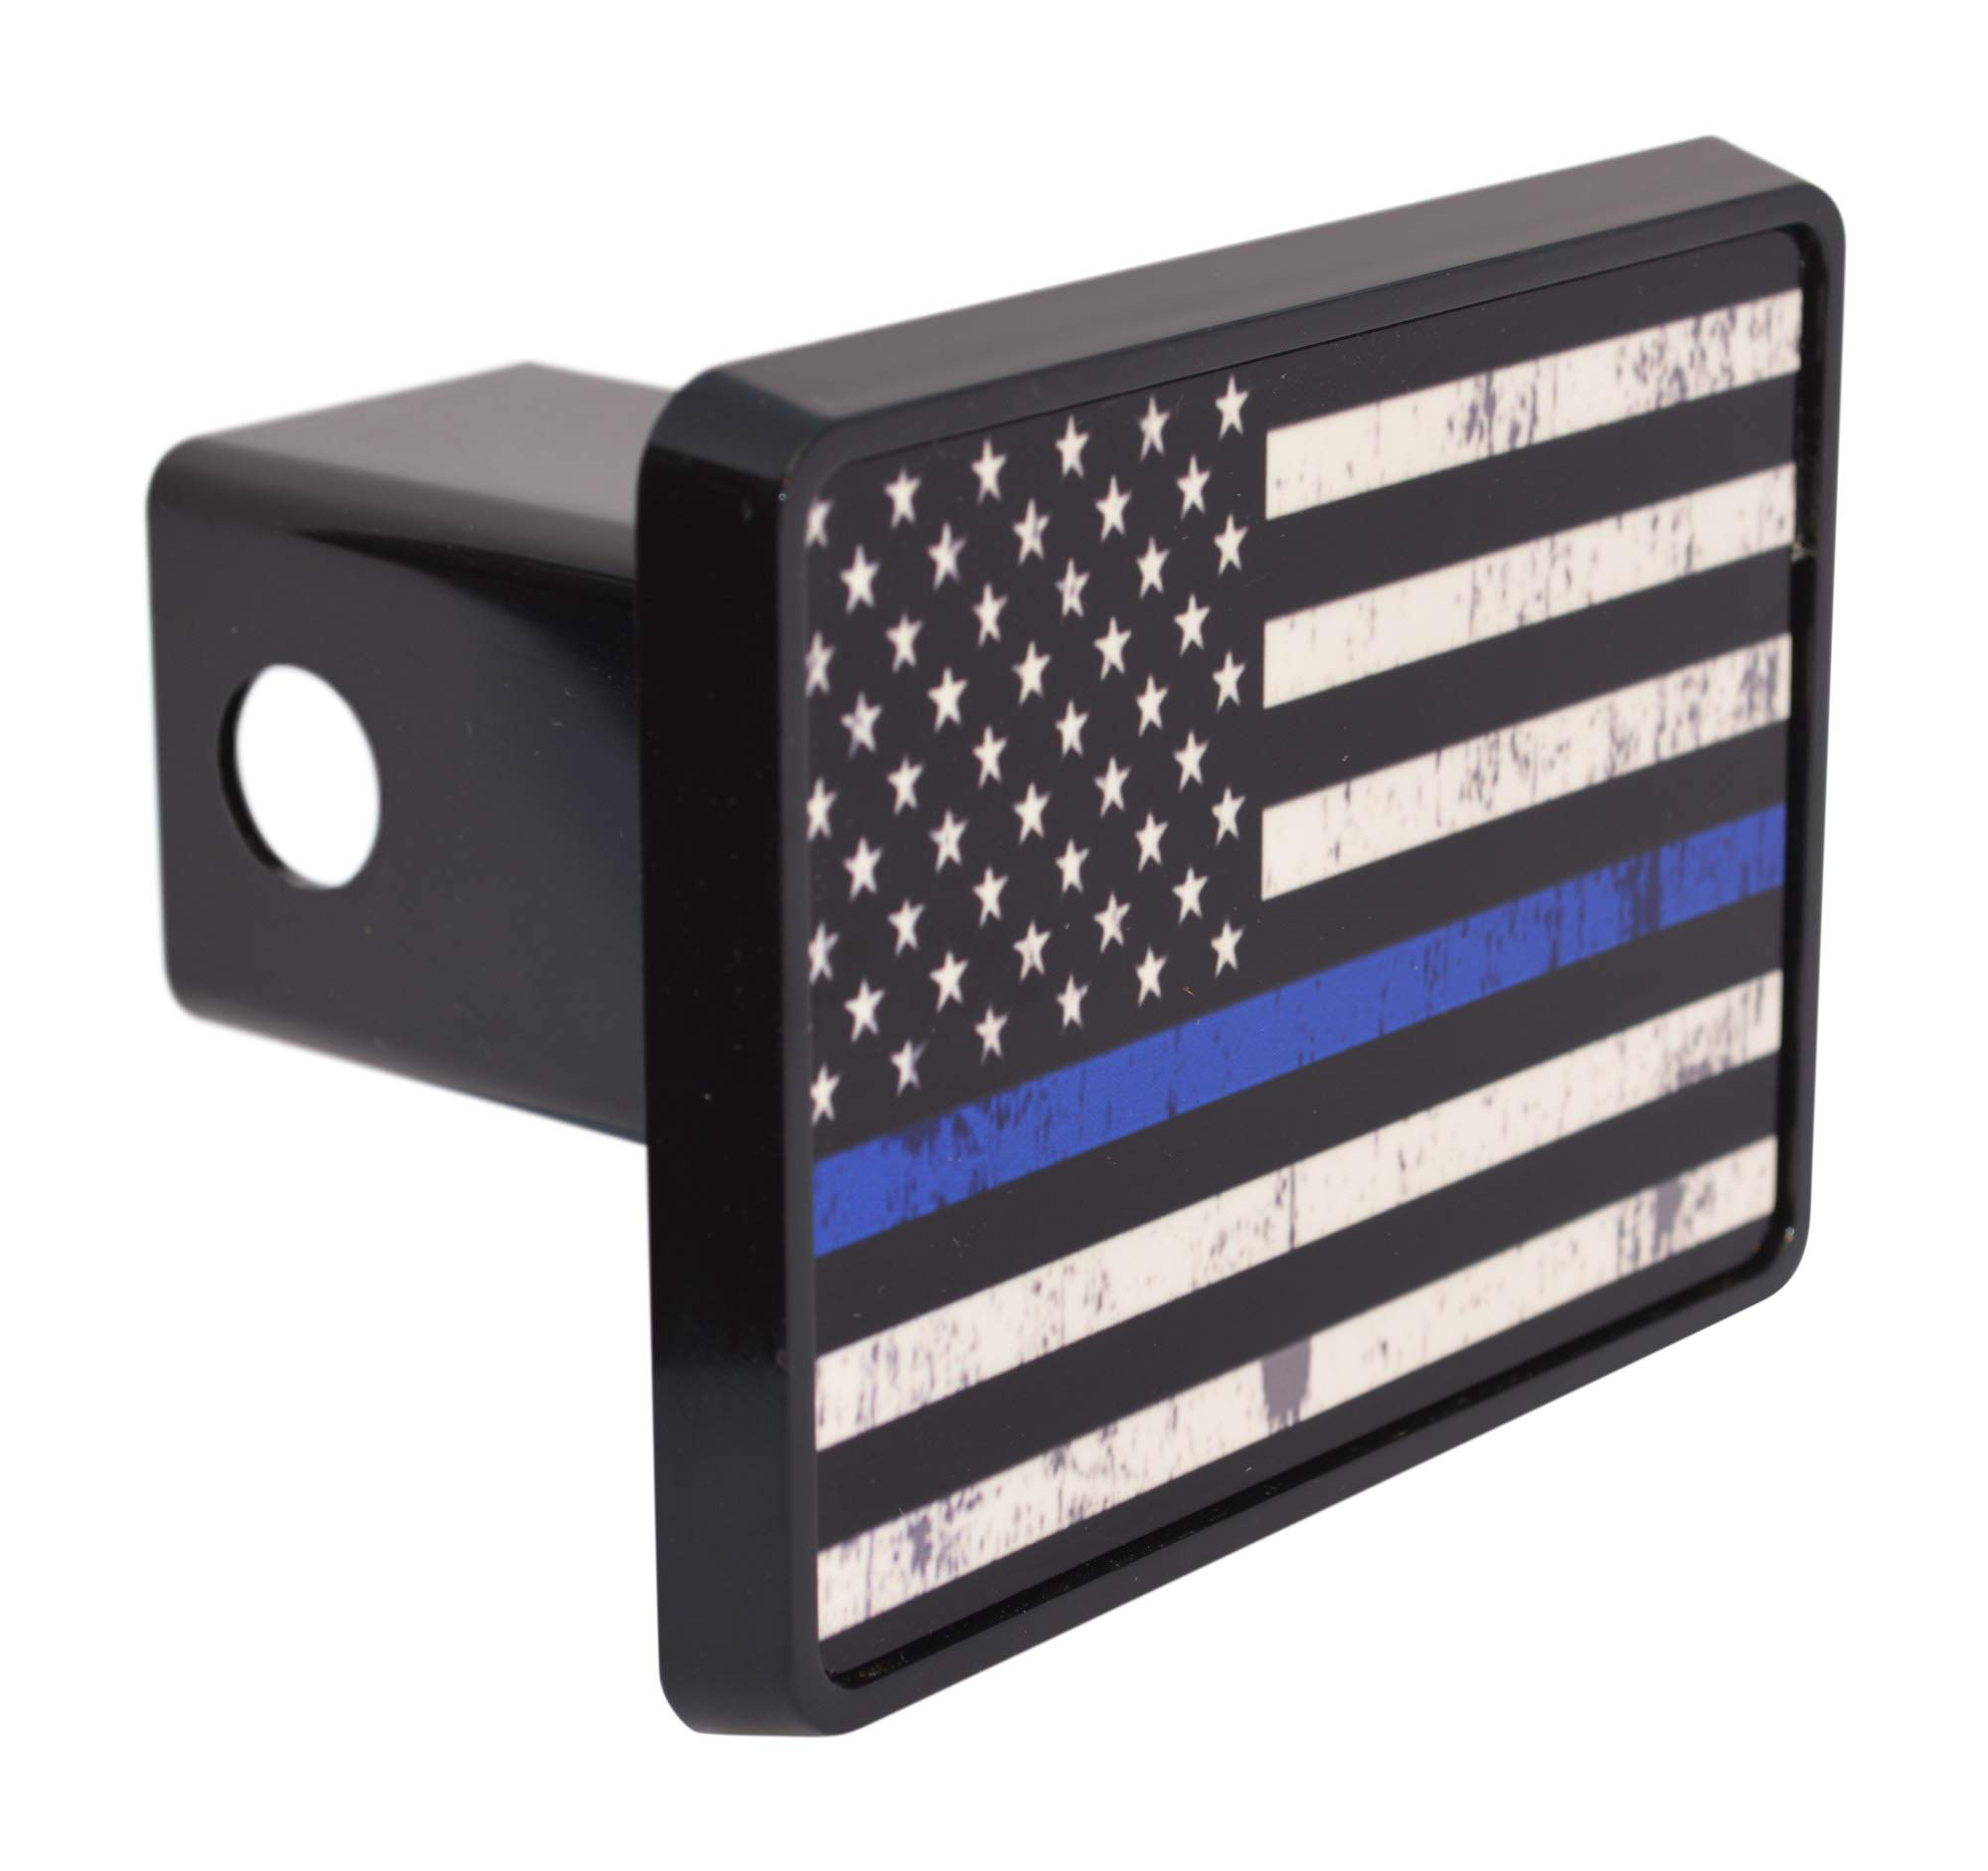 Tattered Thin Blue Line Flag Trailer Hitch Cover Plug US Blue Lives Matter Police Officer Law Enforcement by Rogue River Tactical